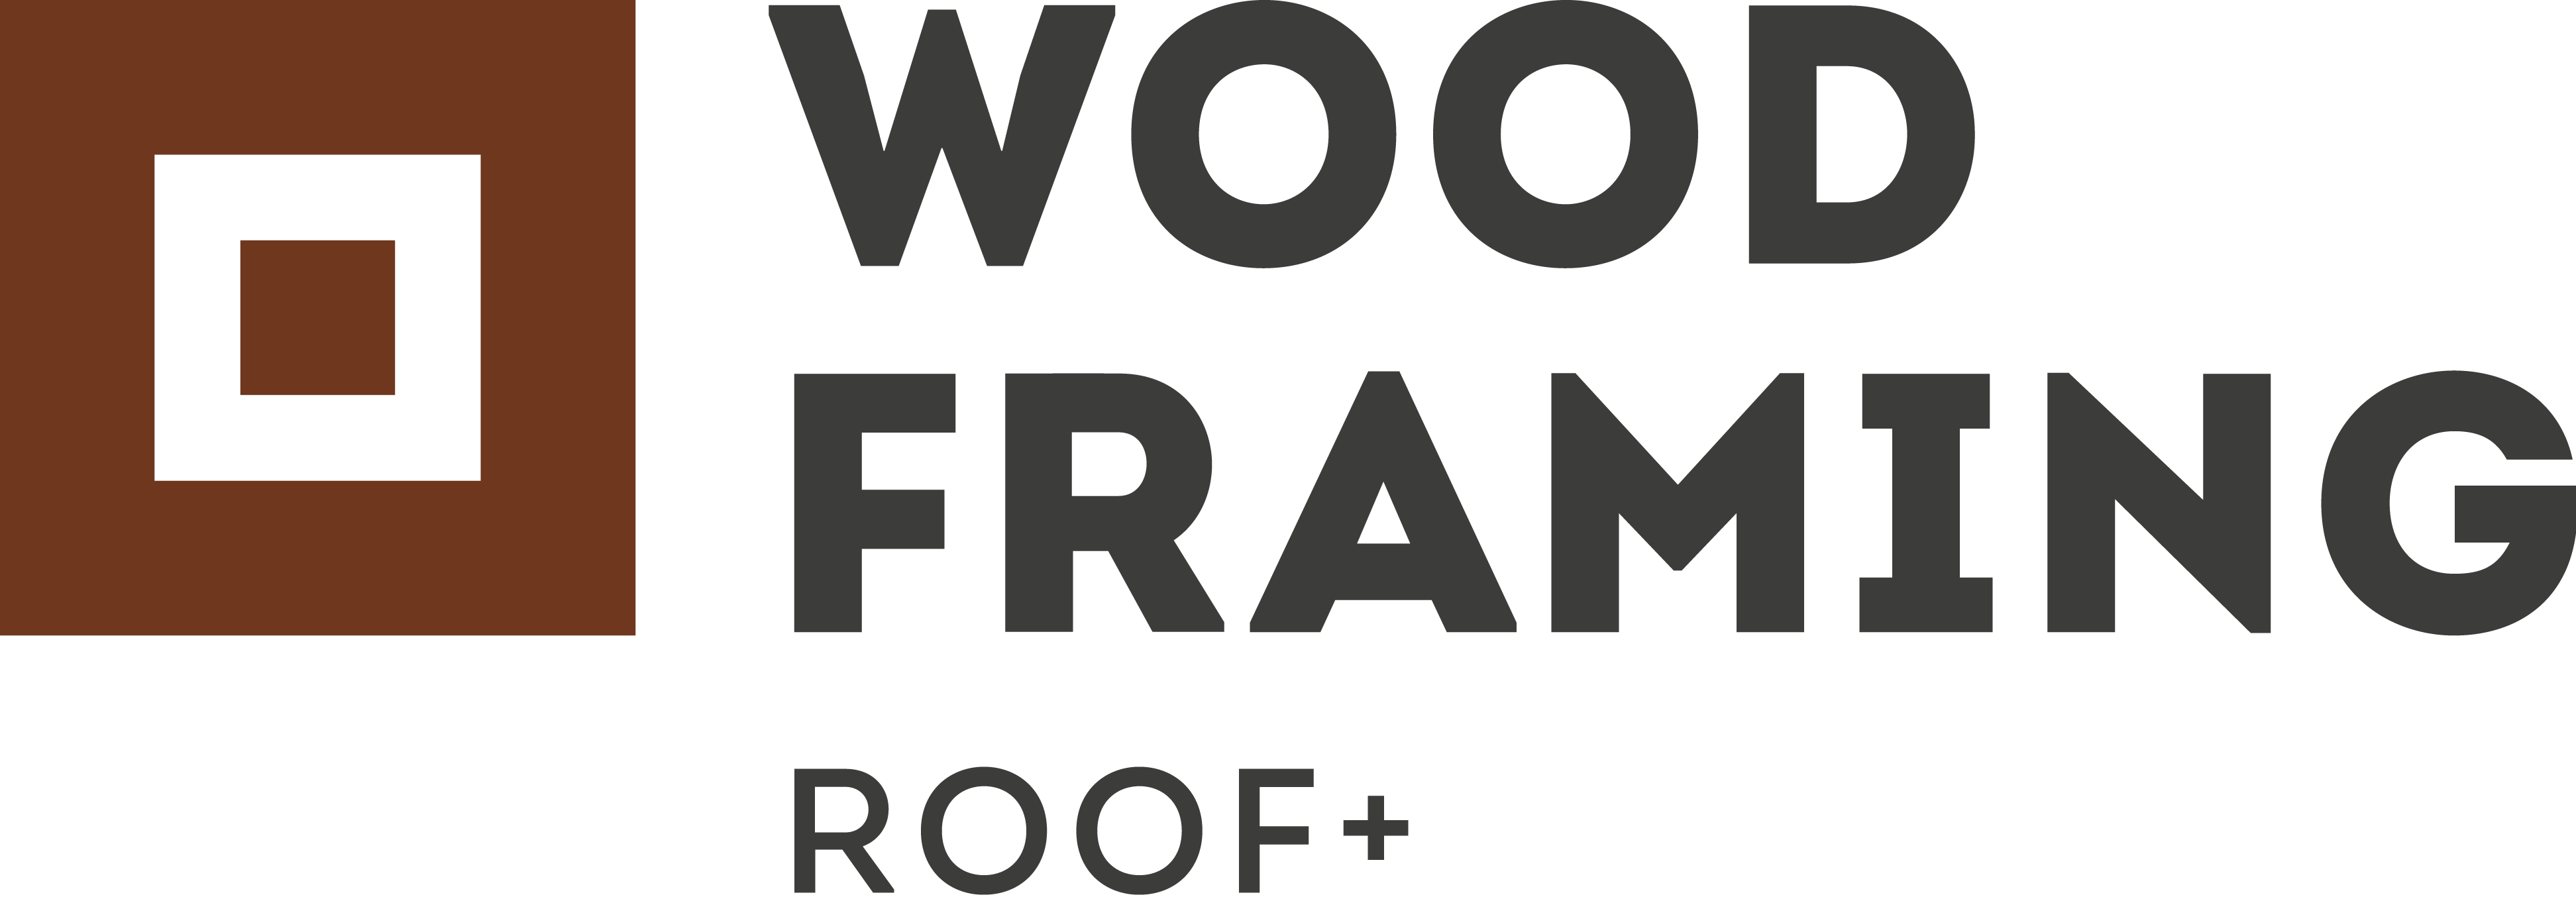 http://www.aga-cad.com/products/bim-solutions/wood-framing-roof